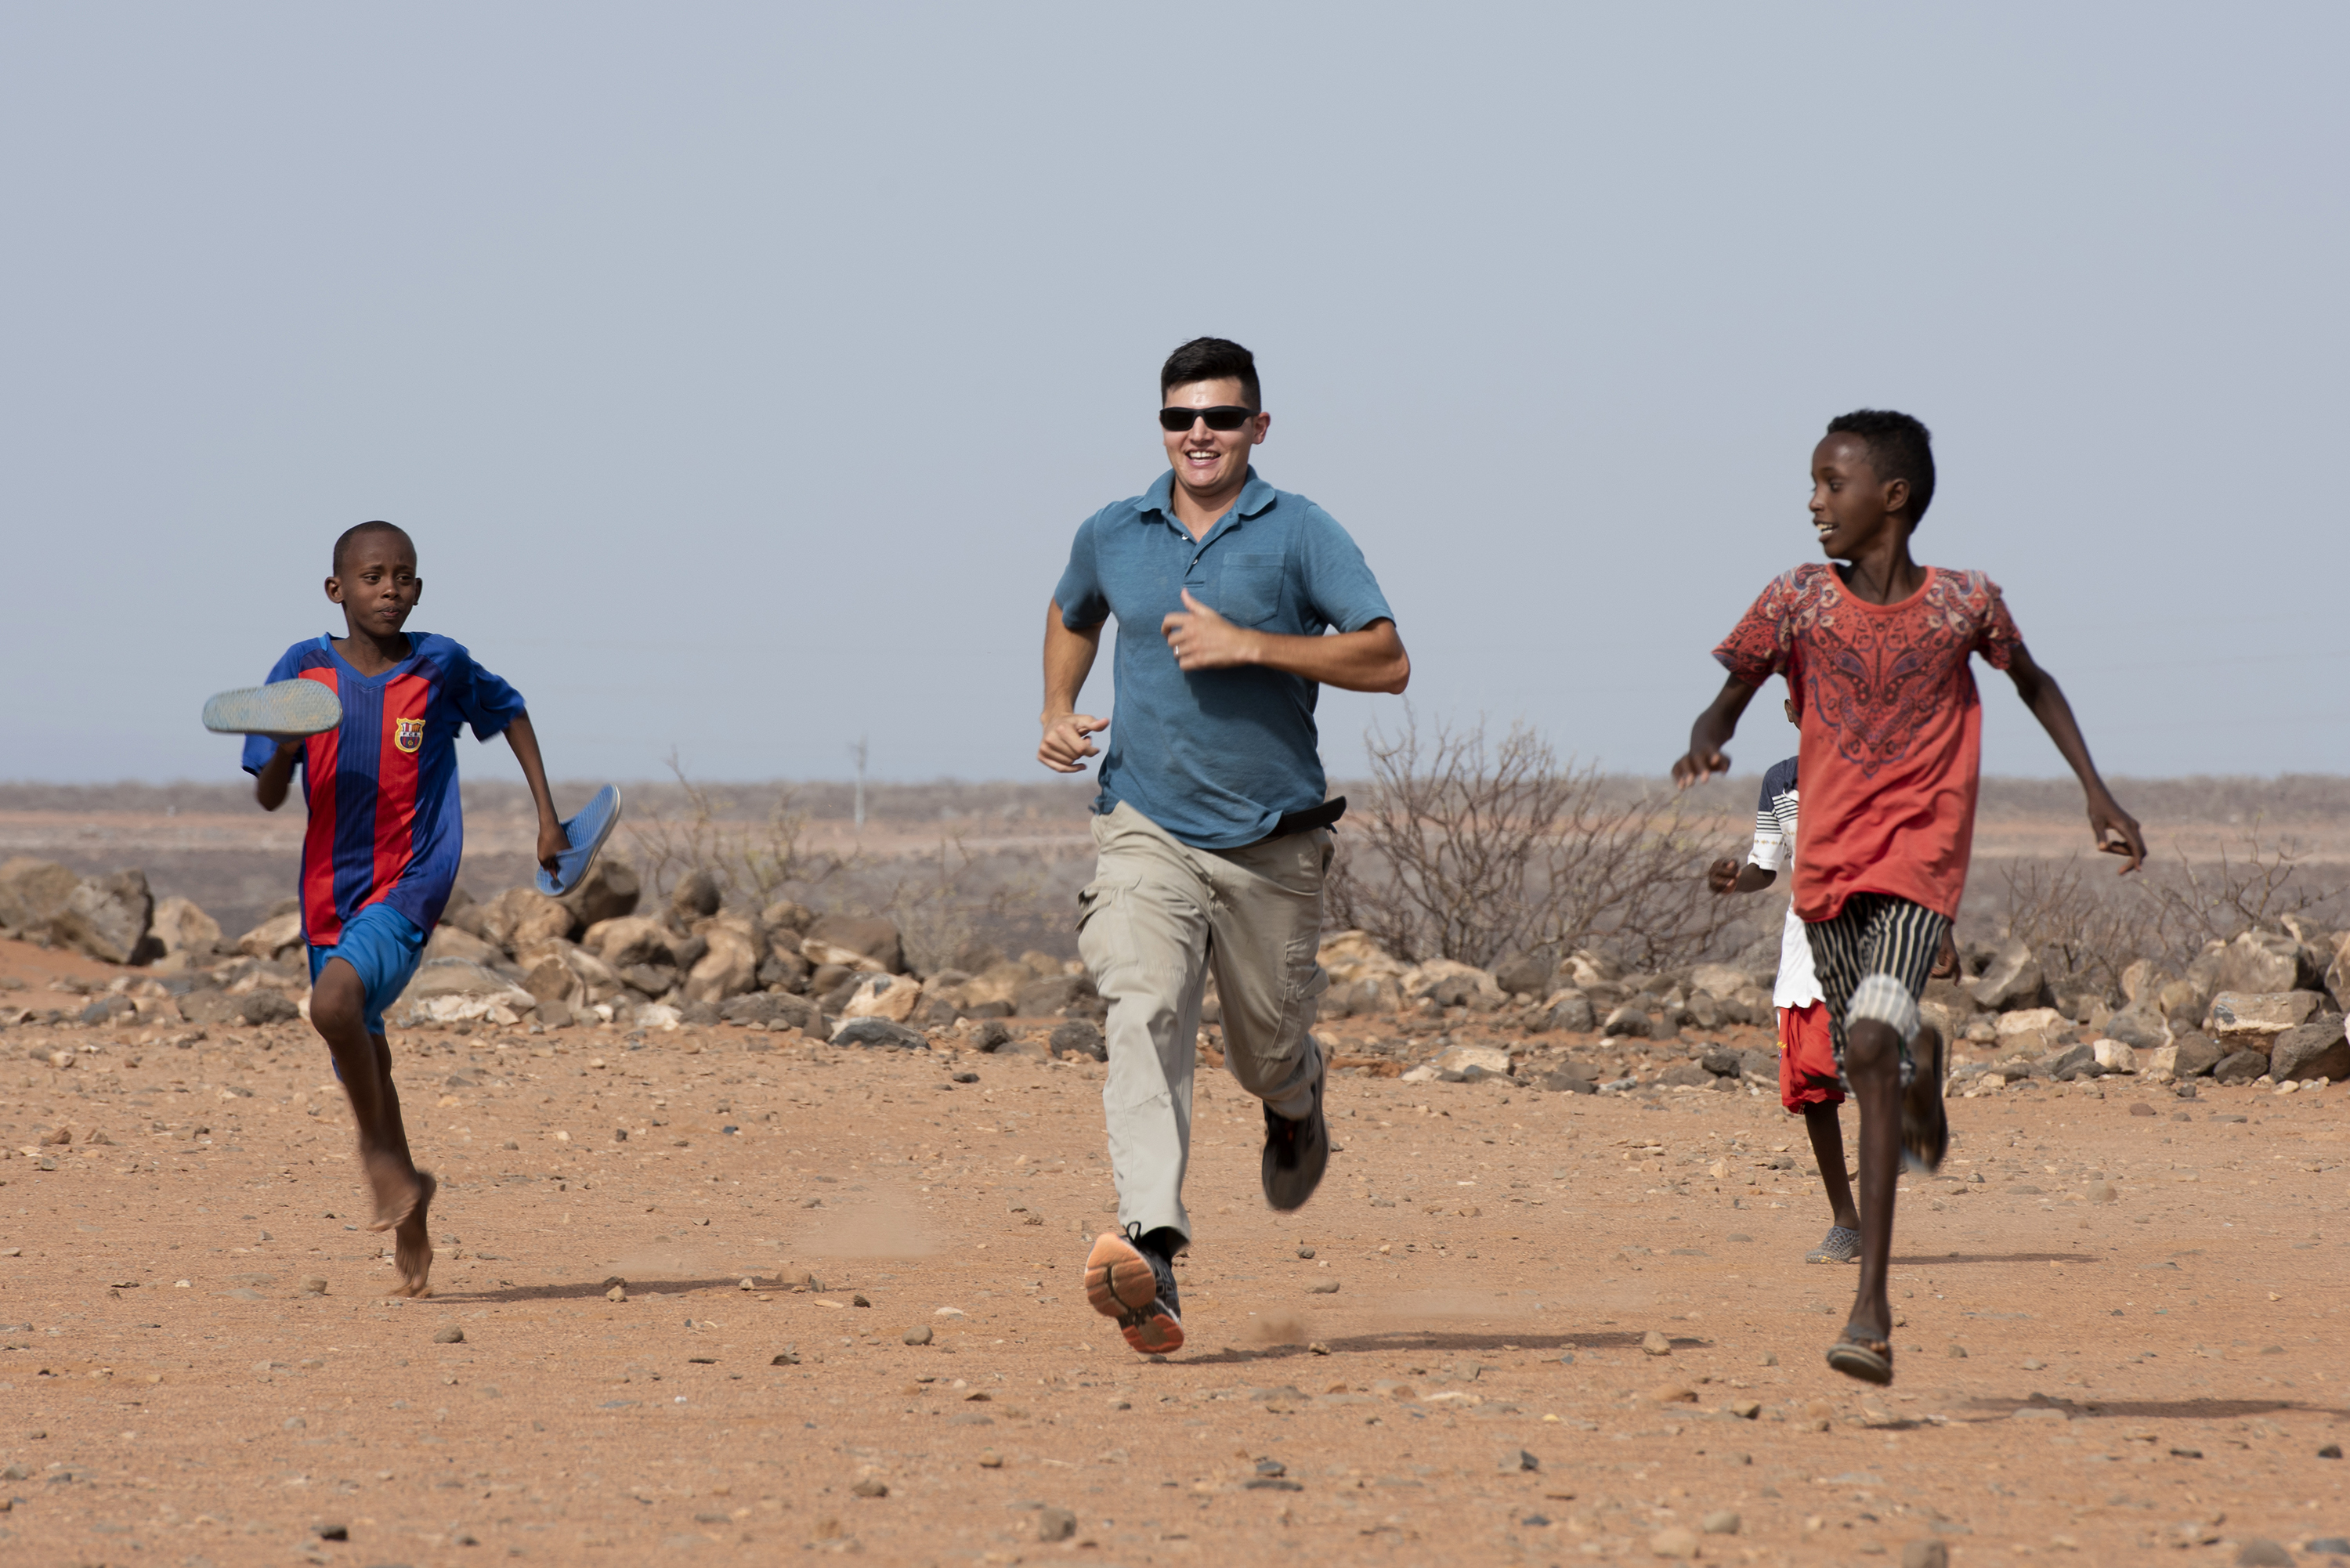 U.S. Army Sgt. Eythan Caputo, a civil affairs specialist with the 404th Civil Affairs Battalion, races with children from the local village outside of Chebelley Village, Djibouti, Aug. 3, 2018. Caputo was one of 30 service members participating in a outreach event organized by the 404th Civil Affairs Battalion. (U.S. Air National Guard photo by Master Sgt. Sarah Mattison)